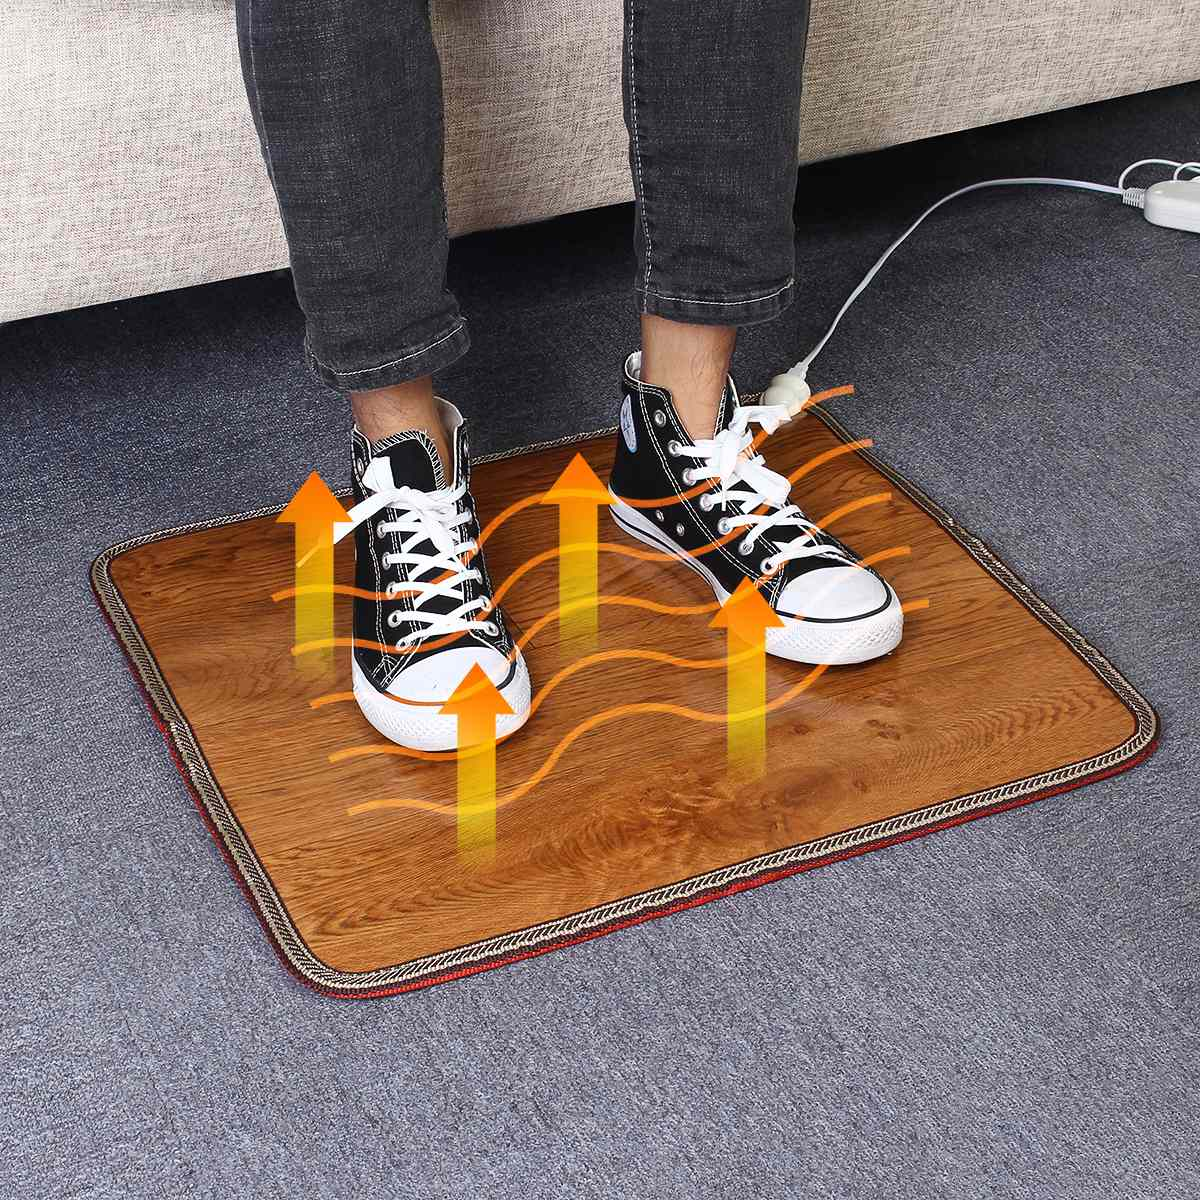 60W 220V 3 Sizes Office Heating Foot Mat Warmer Leather Electric Heating Pad Warm Feet Thermostat Carpet Household Warming Tools